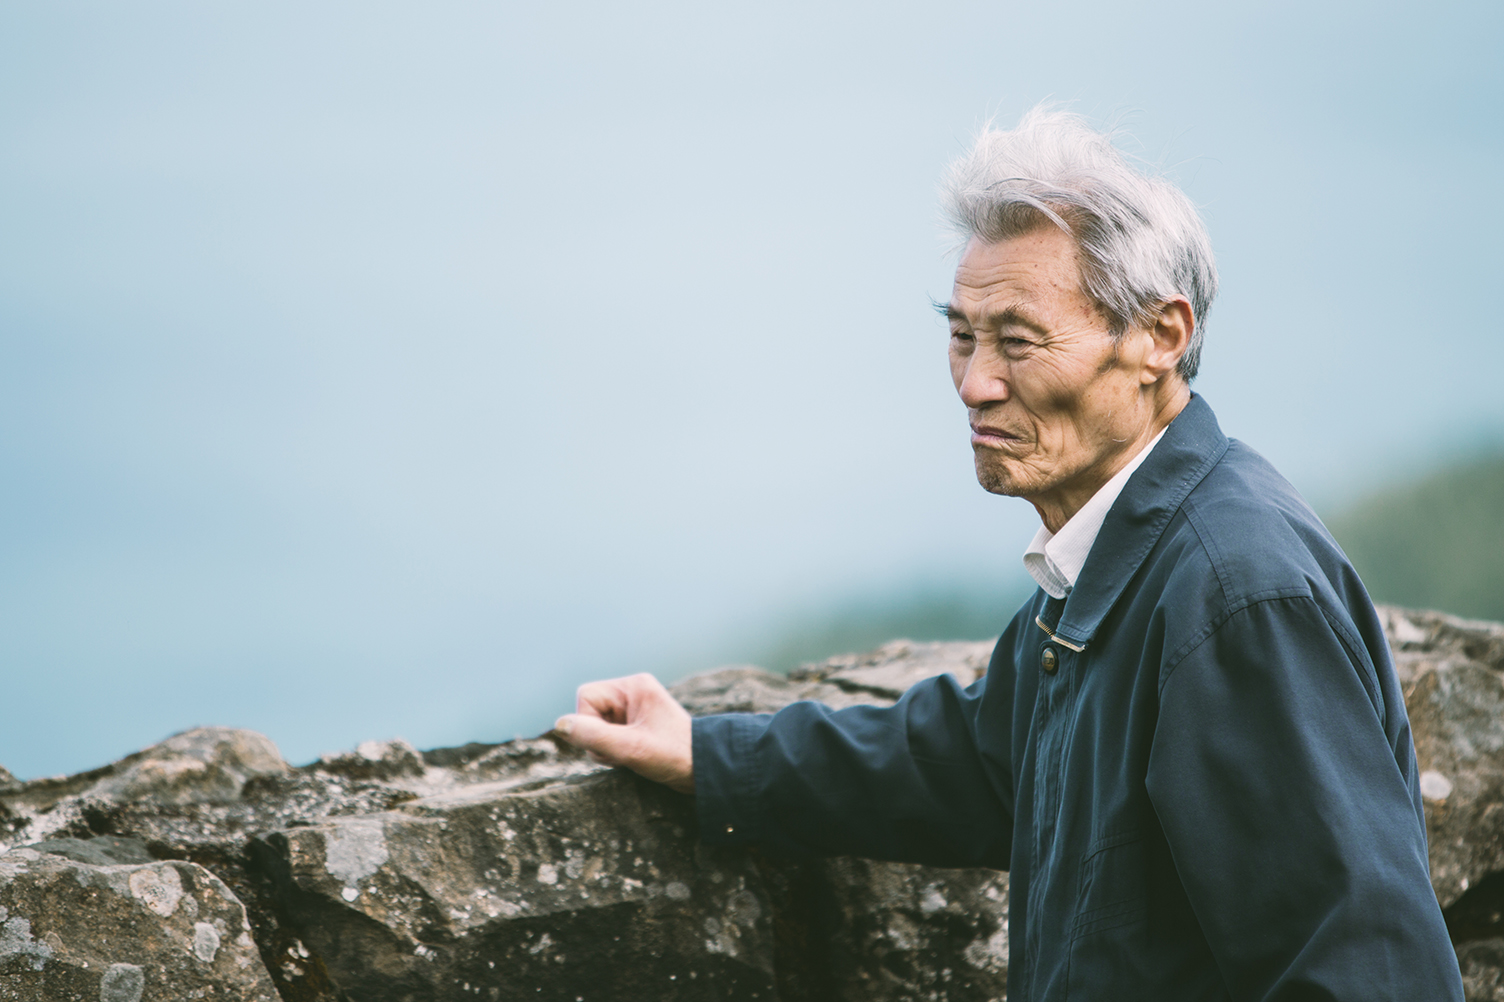 old-guy-orcas-island-washington-looking-out-portrait.jpg